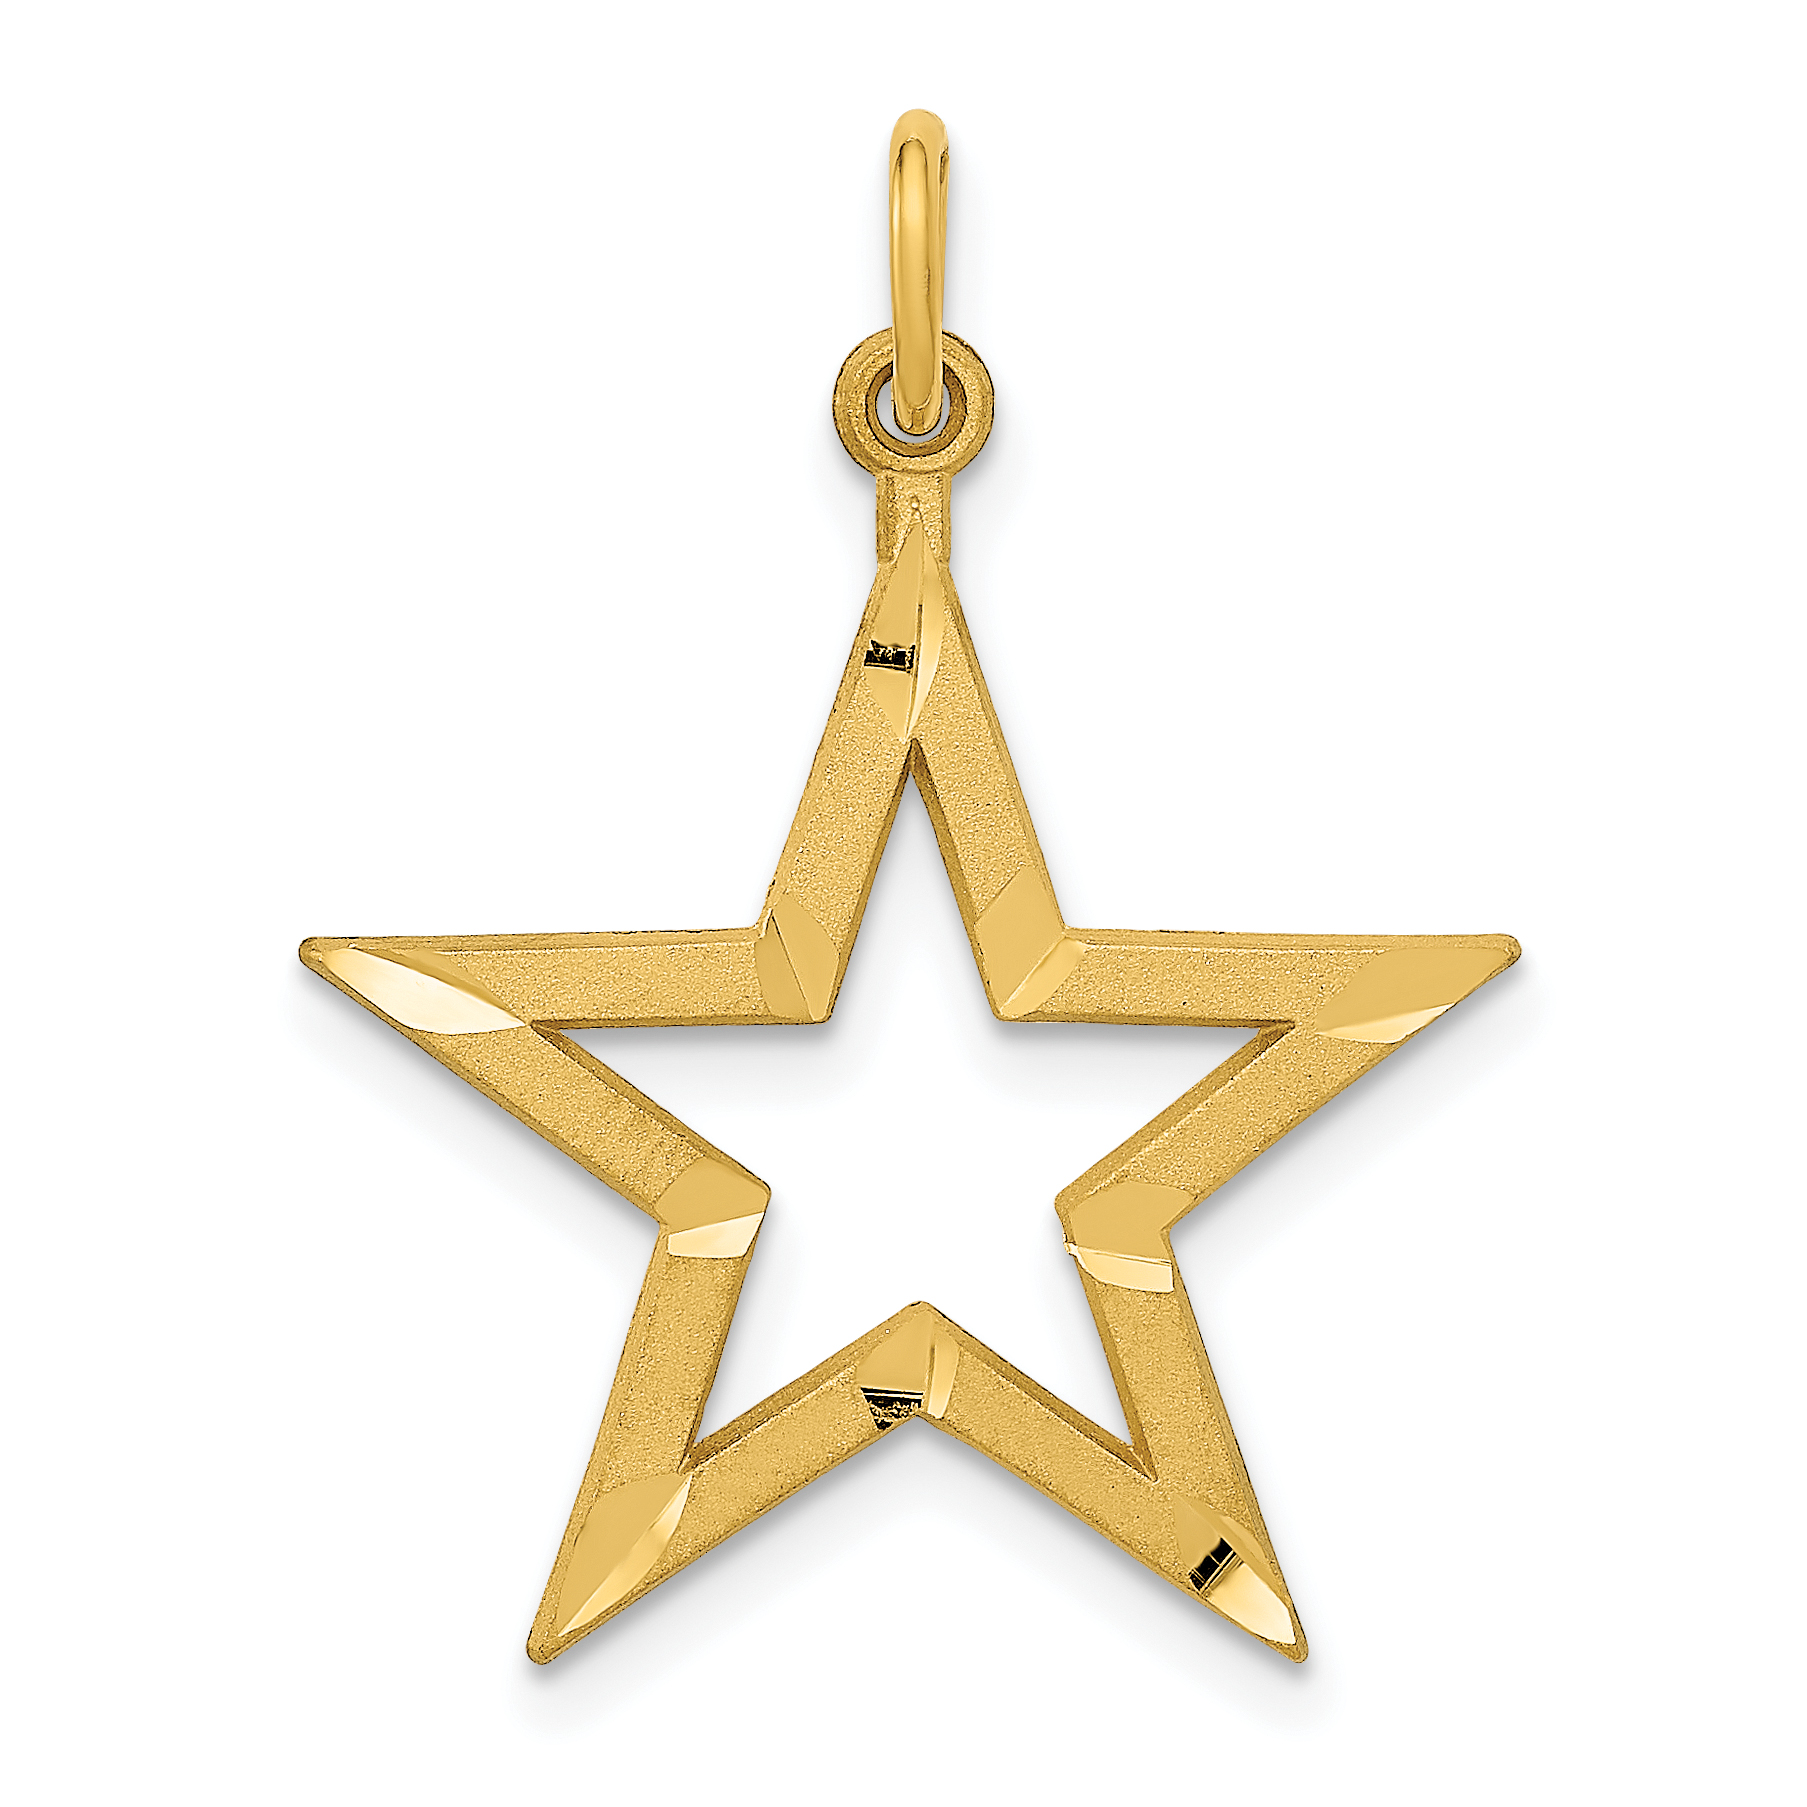 ICE CARATS 14kt Yellow Gold Star Pendant Charm Necklace Celestial Fine Jewelry Ideal Gifts For Women Gift Set From Heart